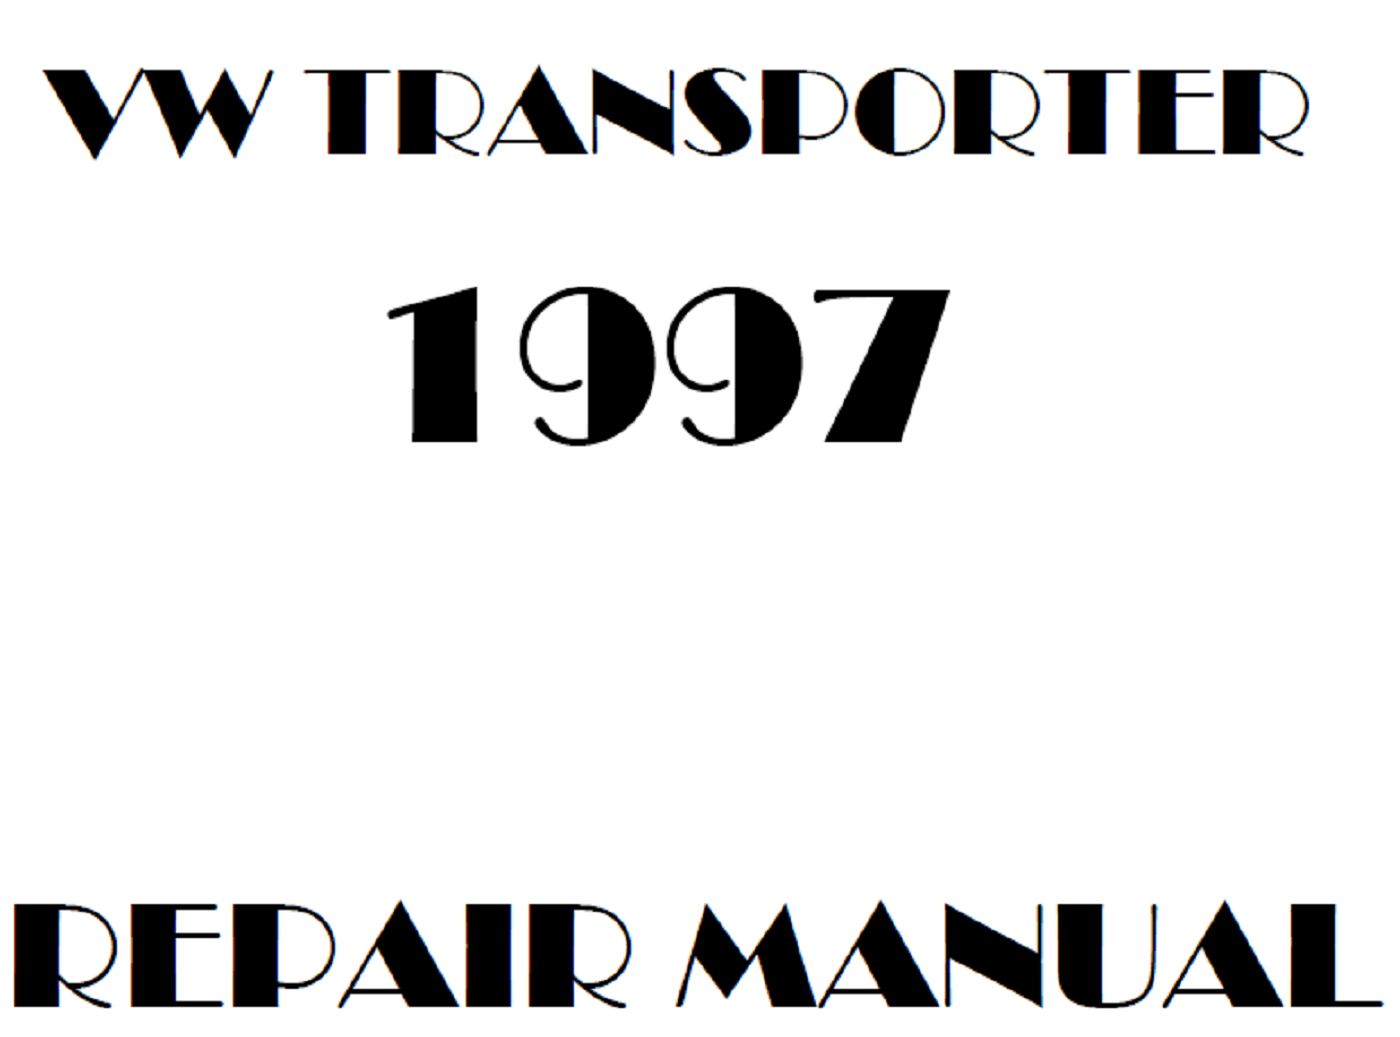 1997 Volkswagen Transporter repair manual